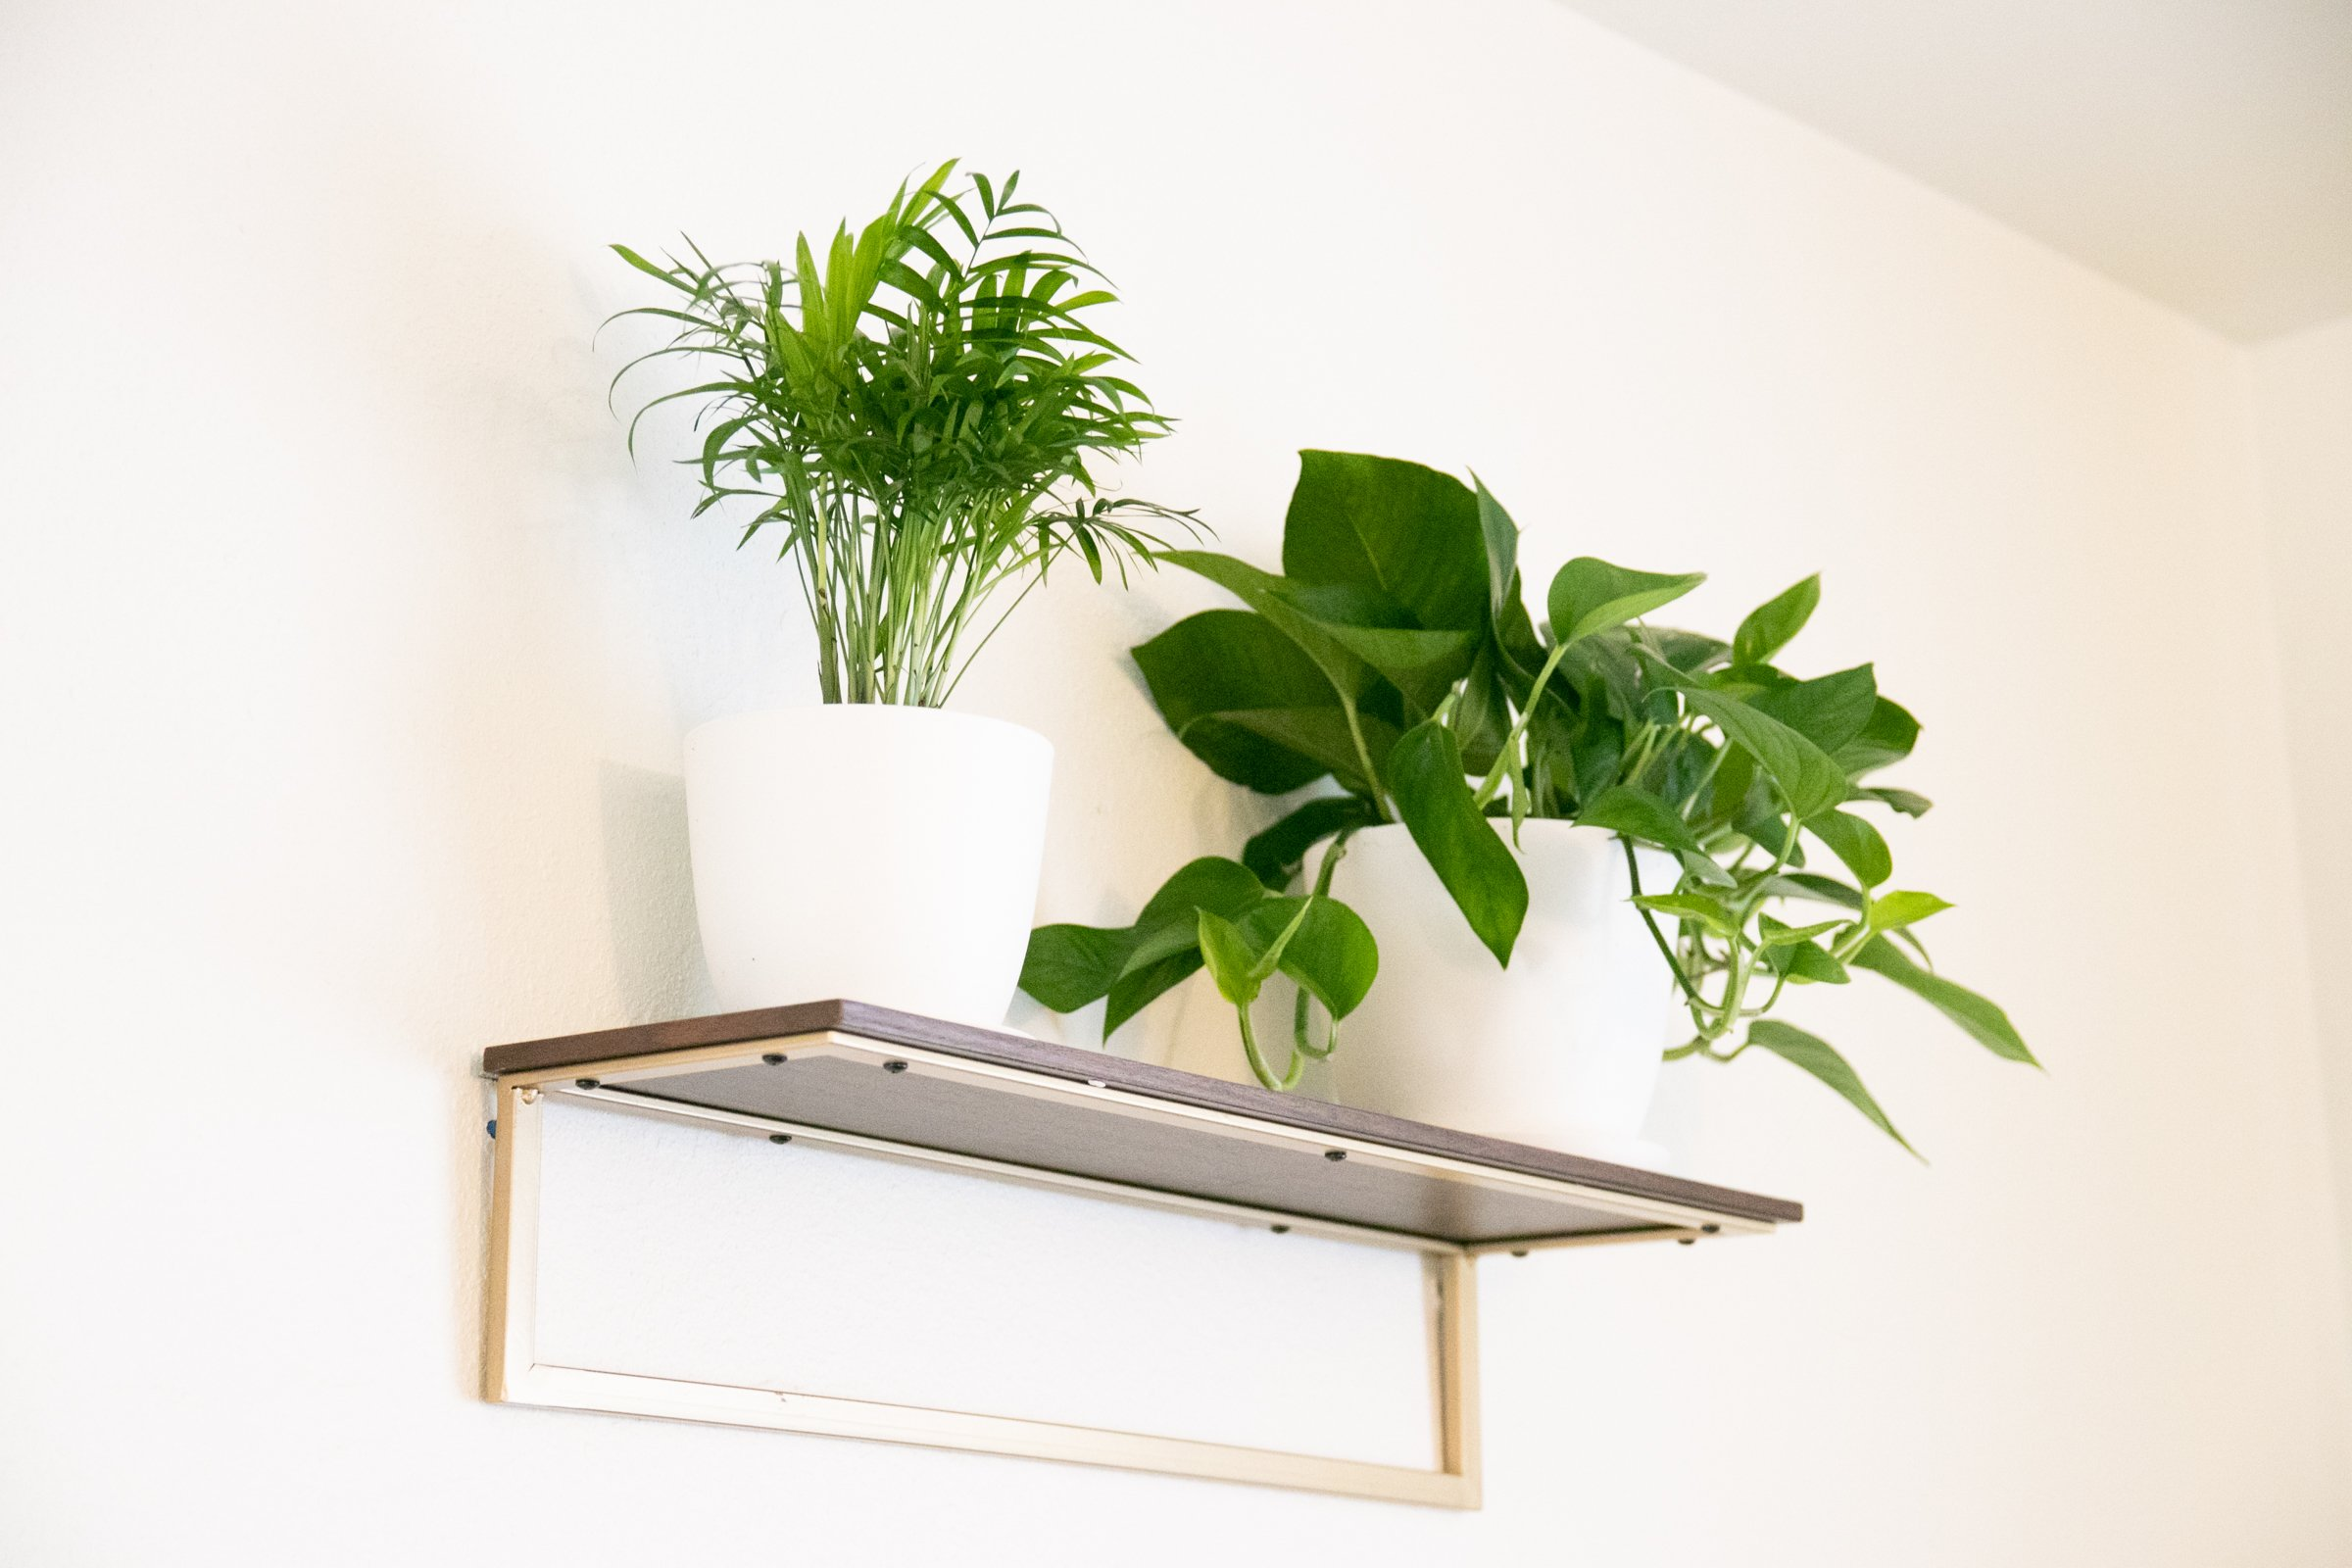 Plants In White Pots On Wall Mounted Shelf